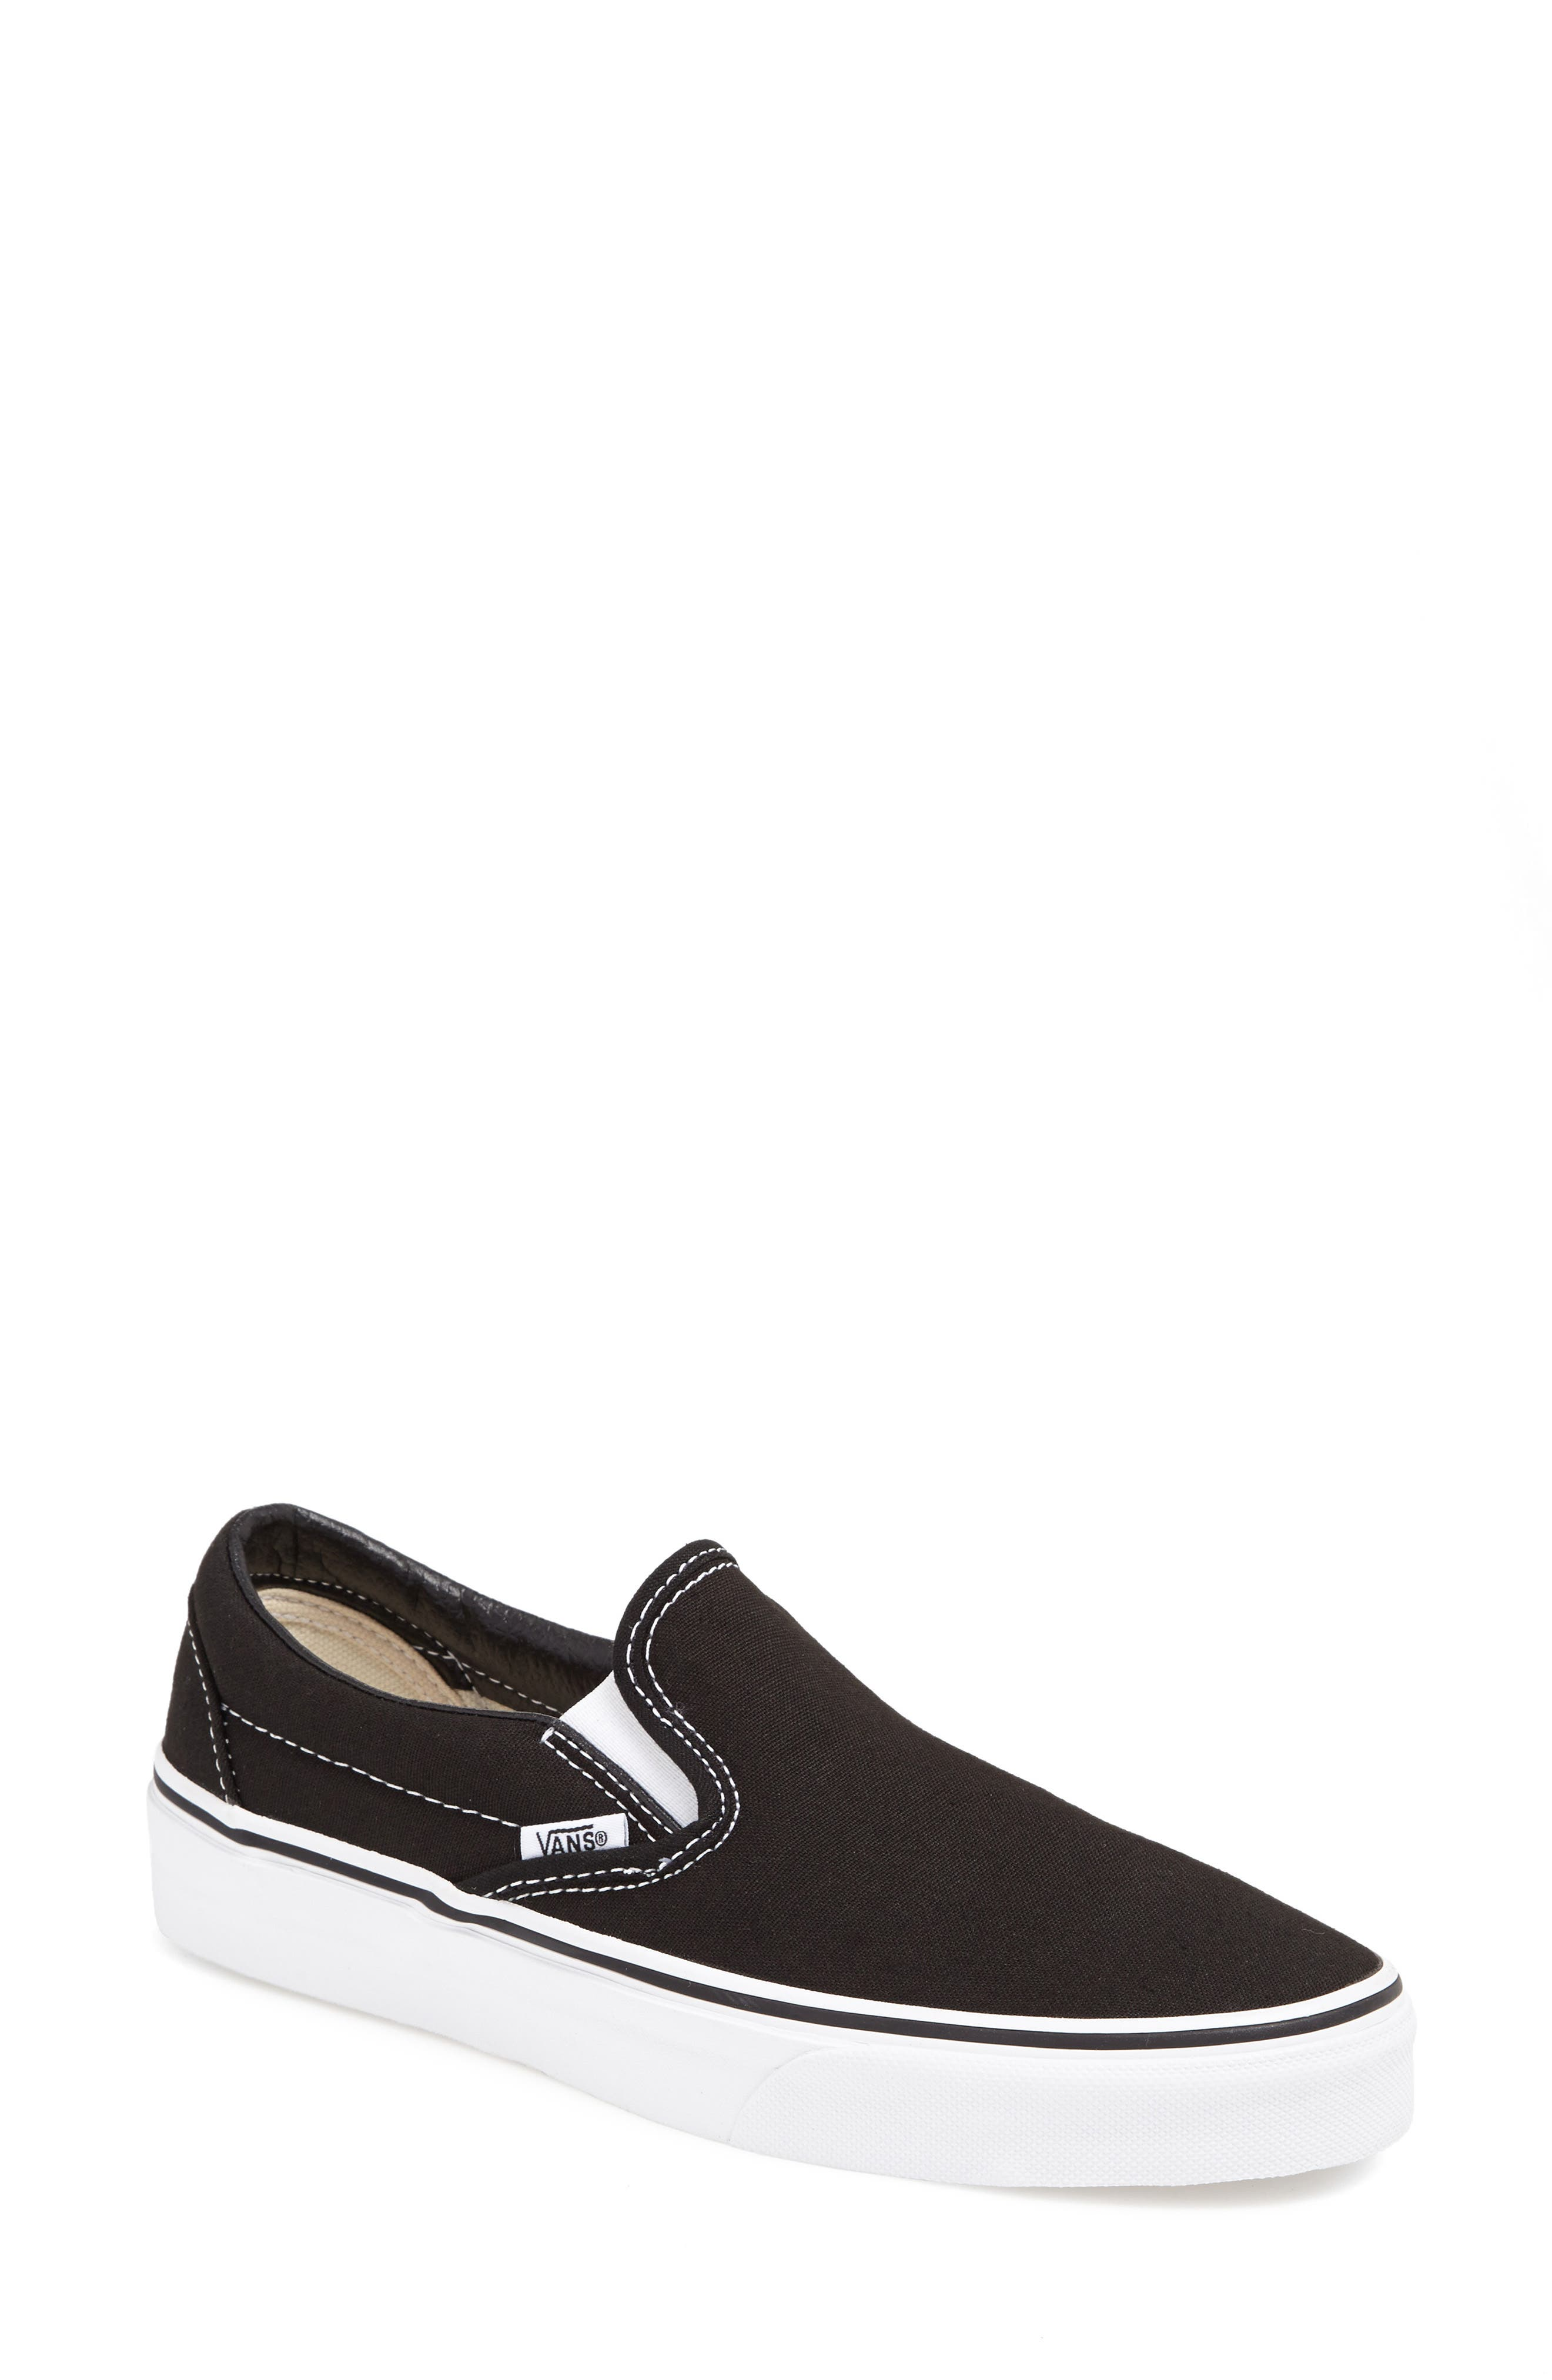 Classic Slip-On Sneaker,                         Main,                         color, BLACK